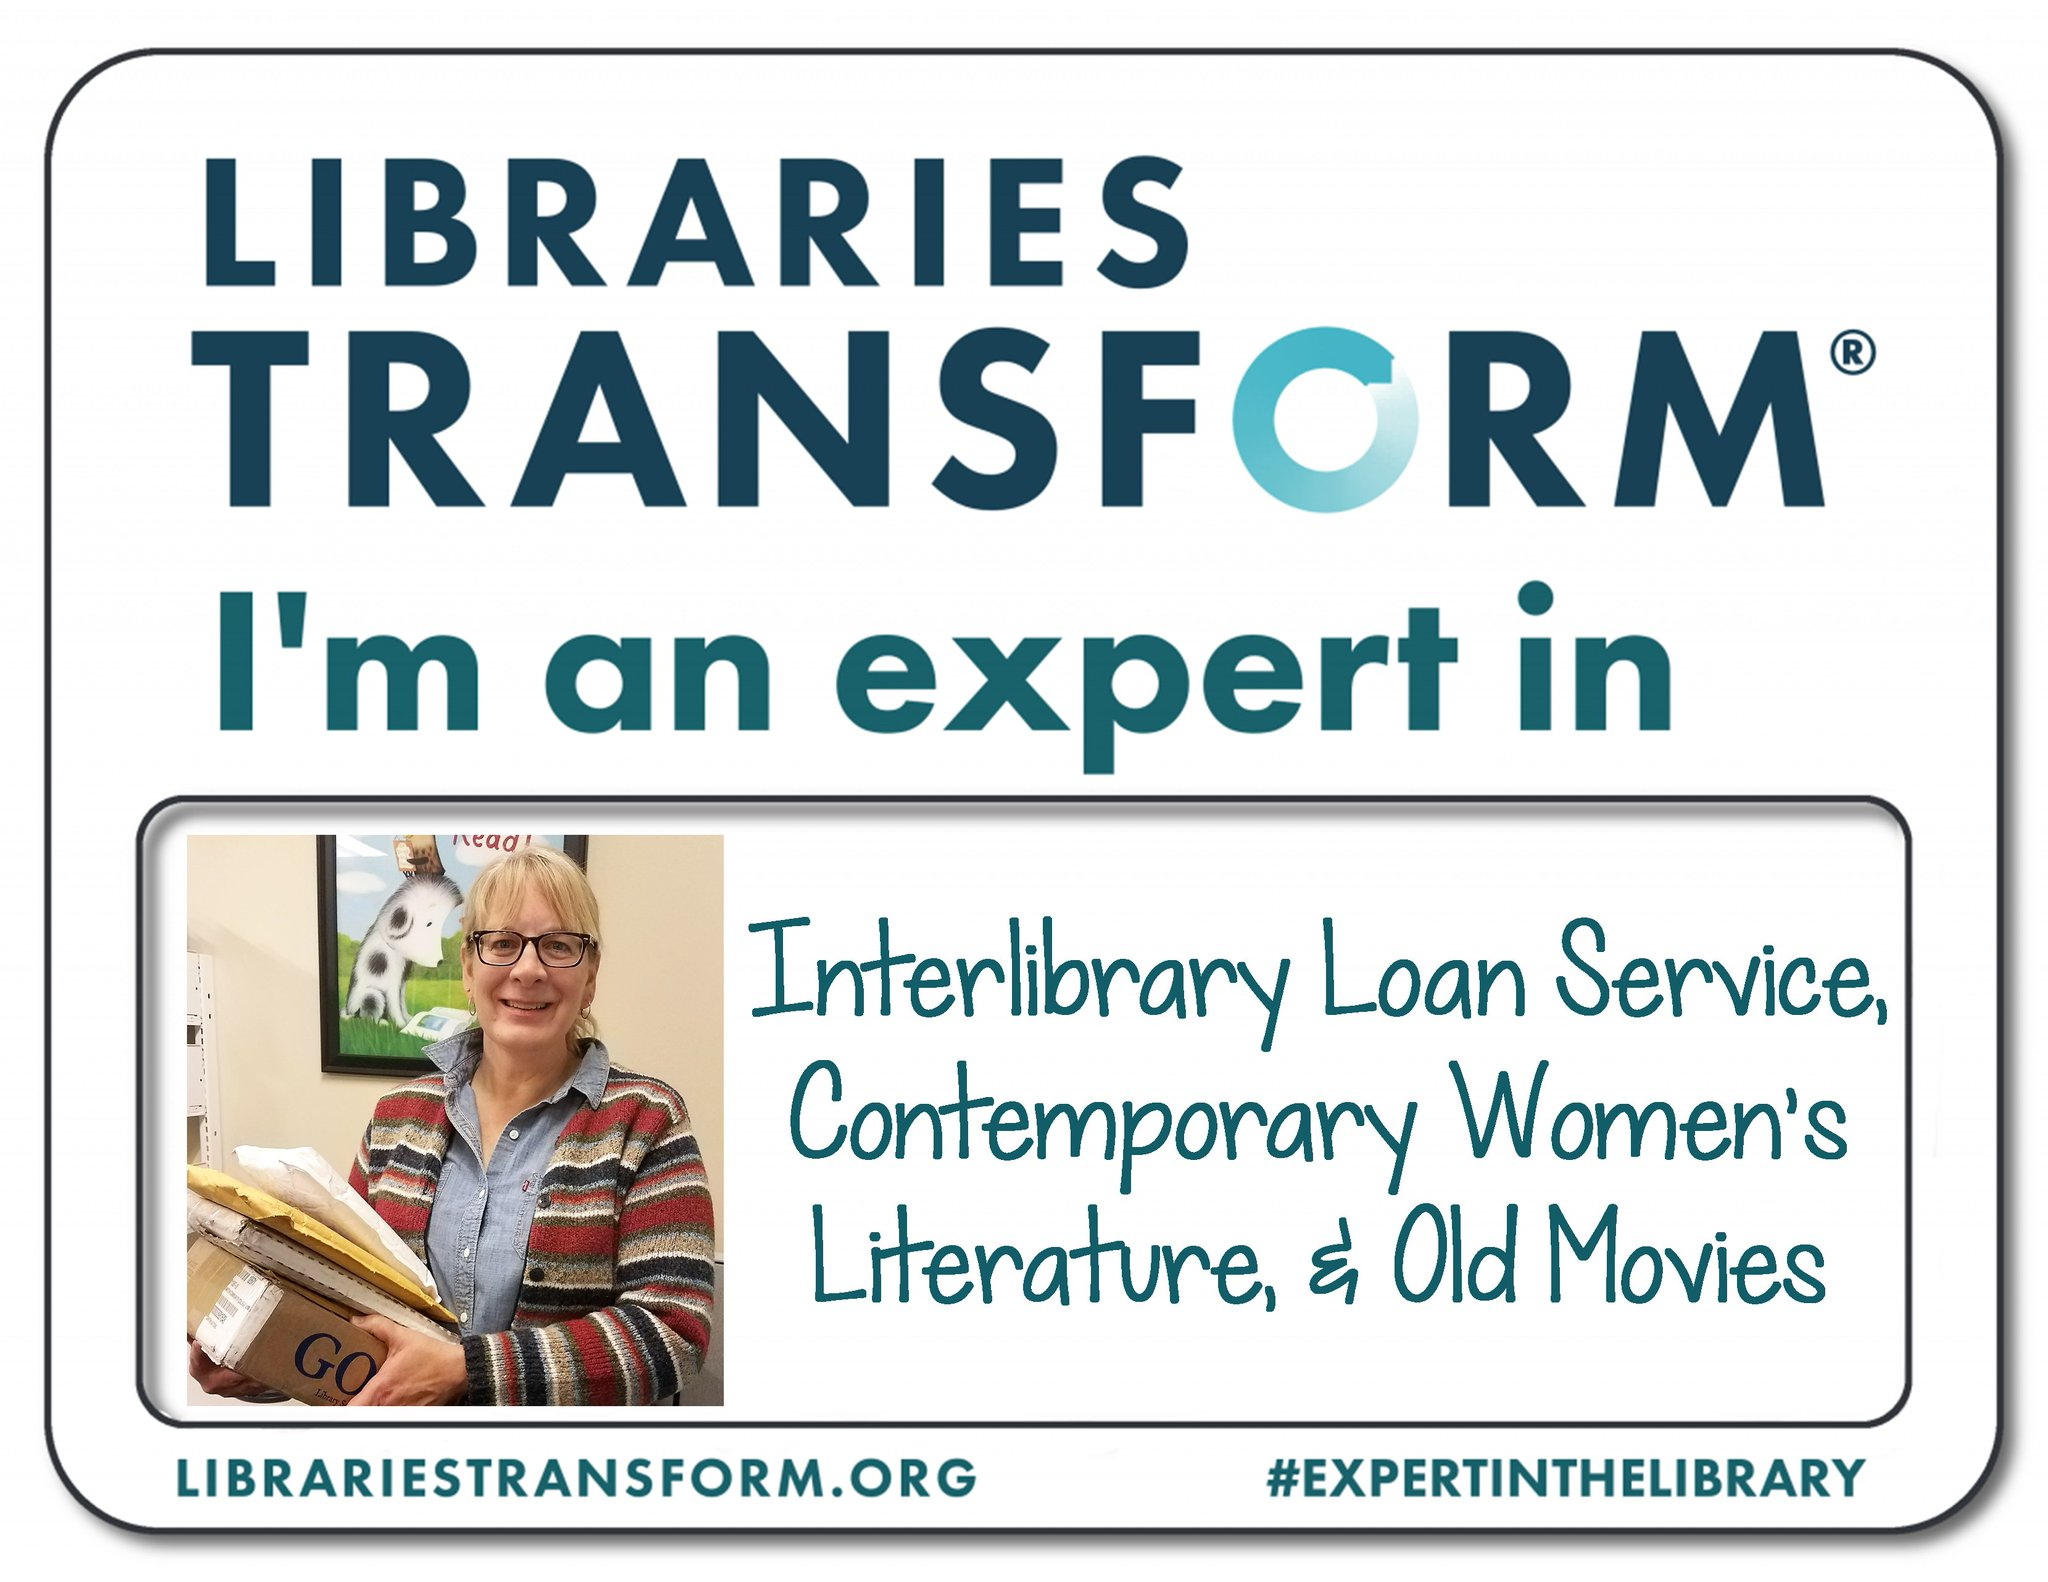 Celebrate #NationalLibraryWeek with us! Meet Jill, an #ExpertInTheLibrary at KPL. https://t.co/bppphOXeHw